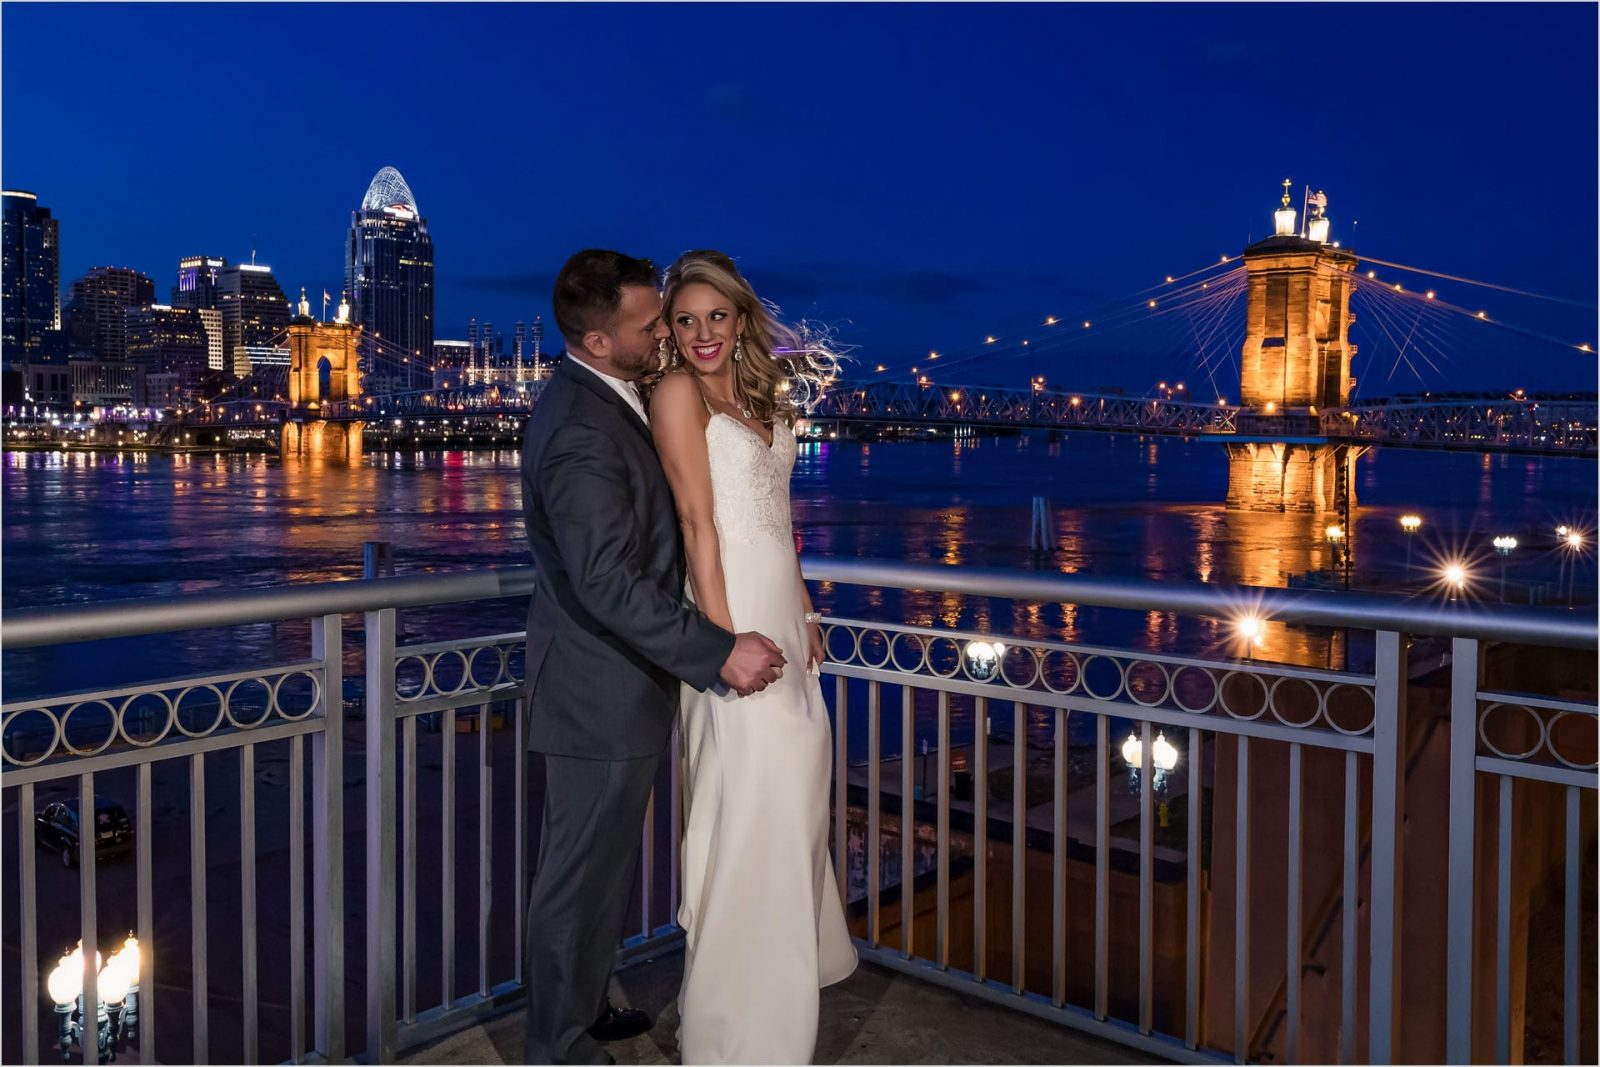 Cincinnati Best Wedding pictures, Roebling Bridge, Cincinnati Marriott Rivercenter, Sunset, Cincinnati skyline sunset wedding